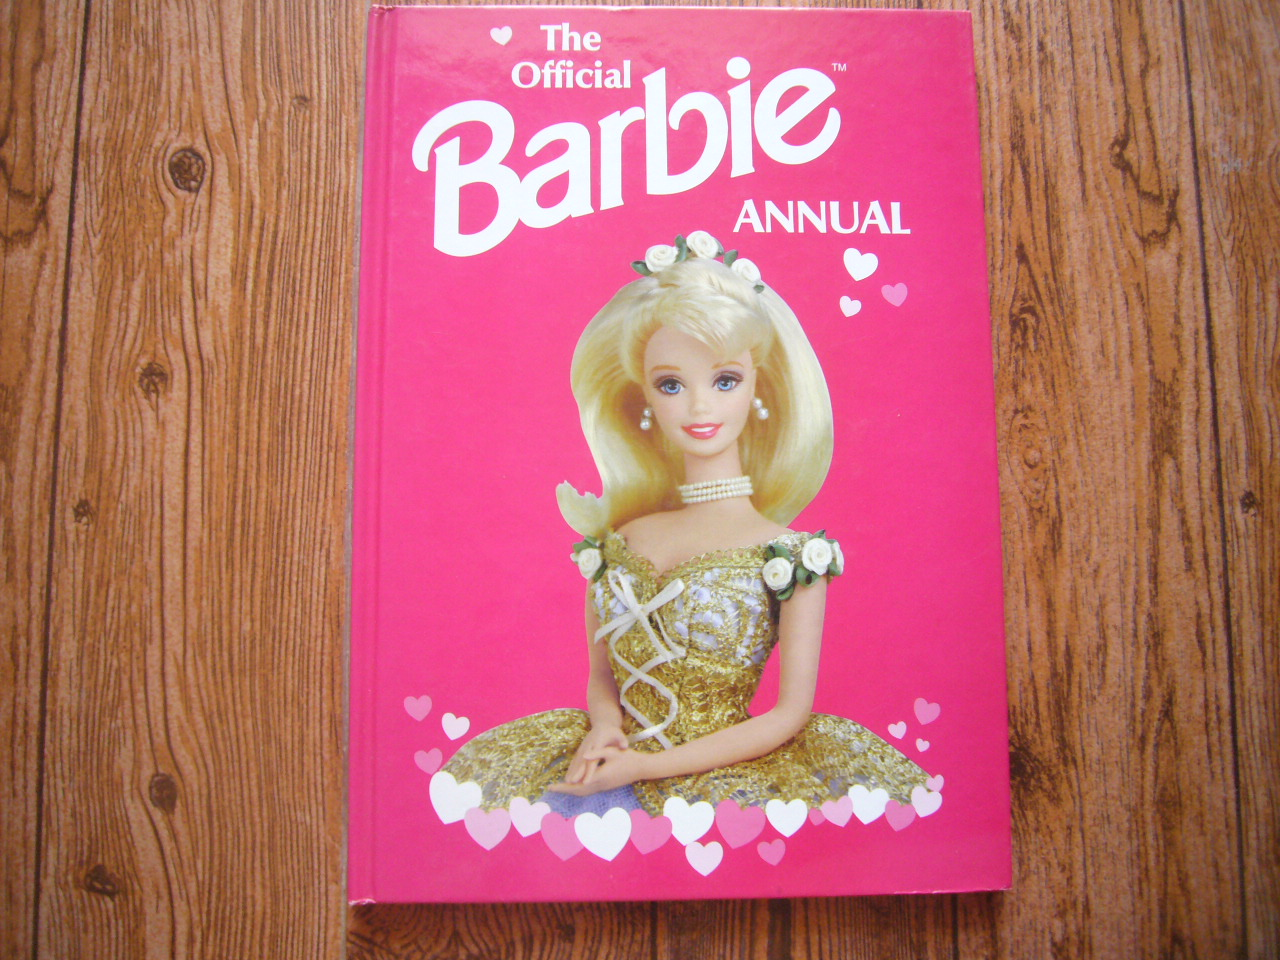 The Official Barbie Annual (1998)